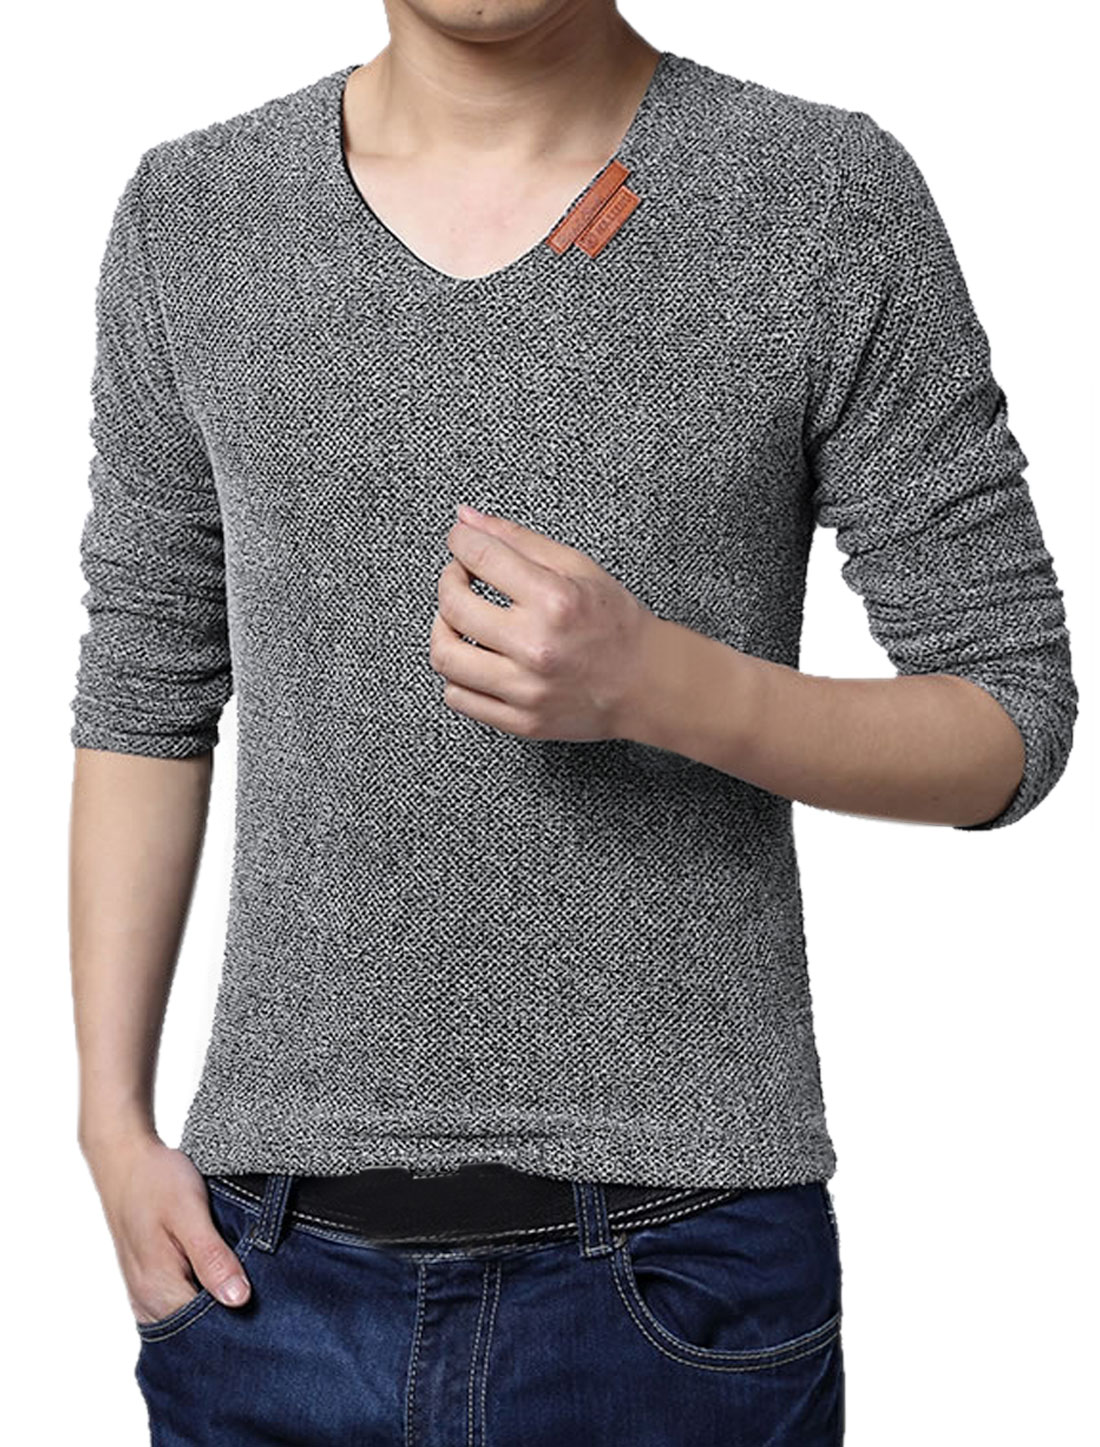 Men V Neck Long Sleeves Netted Mesh Tee Shirt Gray S